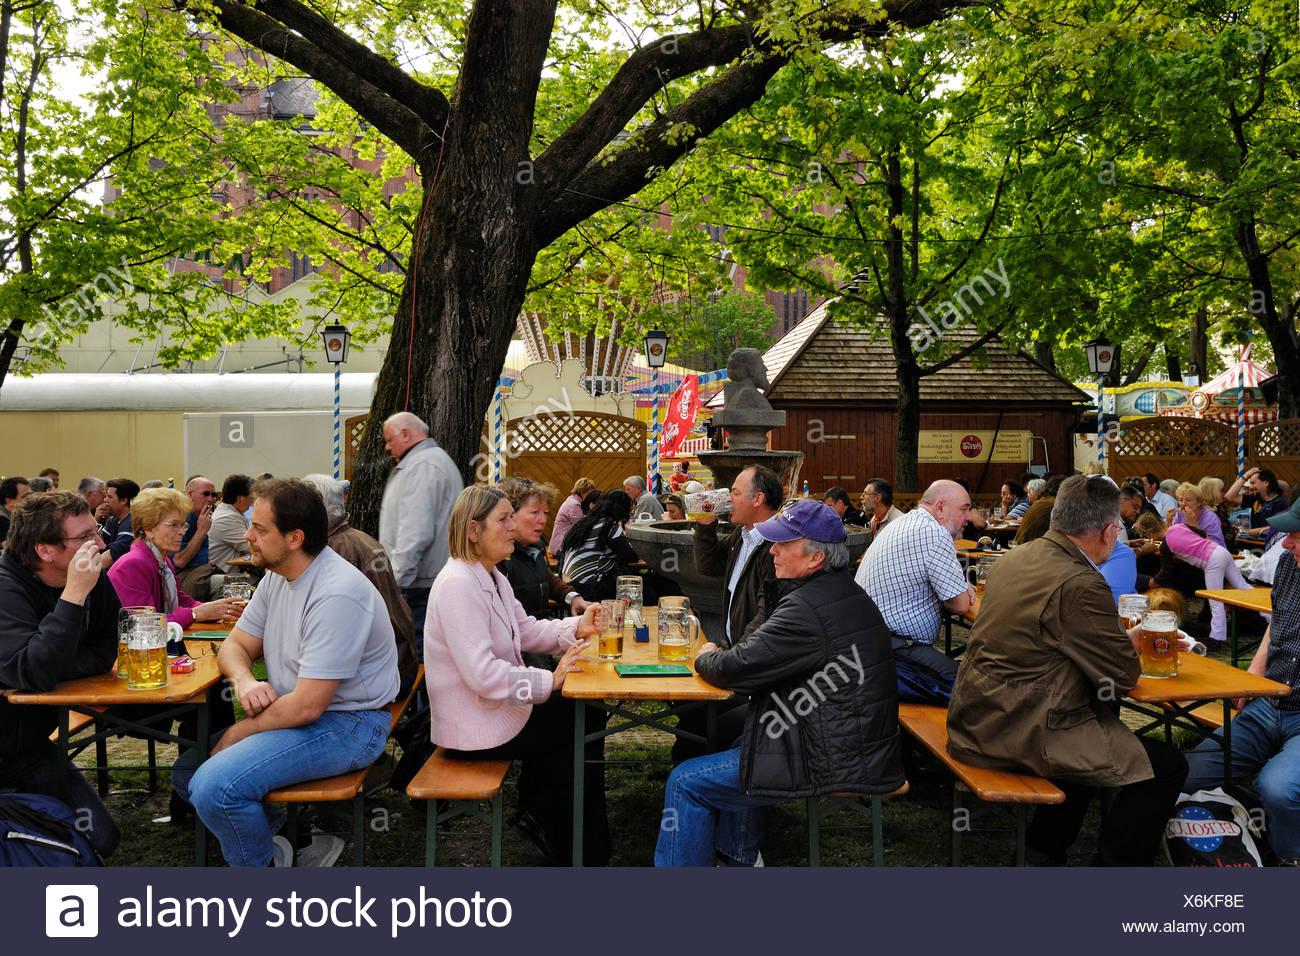 Beer garden, Auer Dult, traditional market in Munich, Bavaria, Germany, Europe - Stock Image